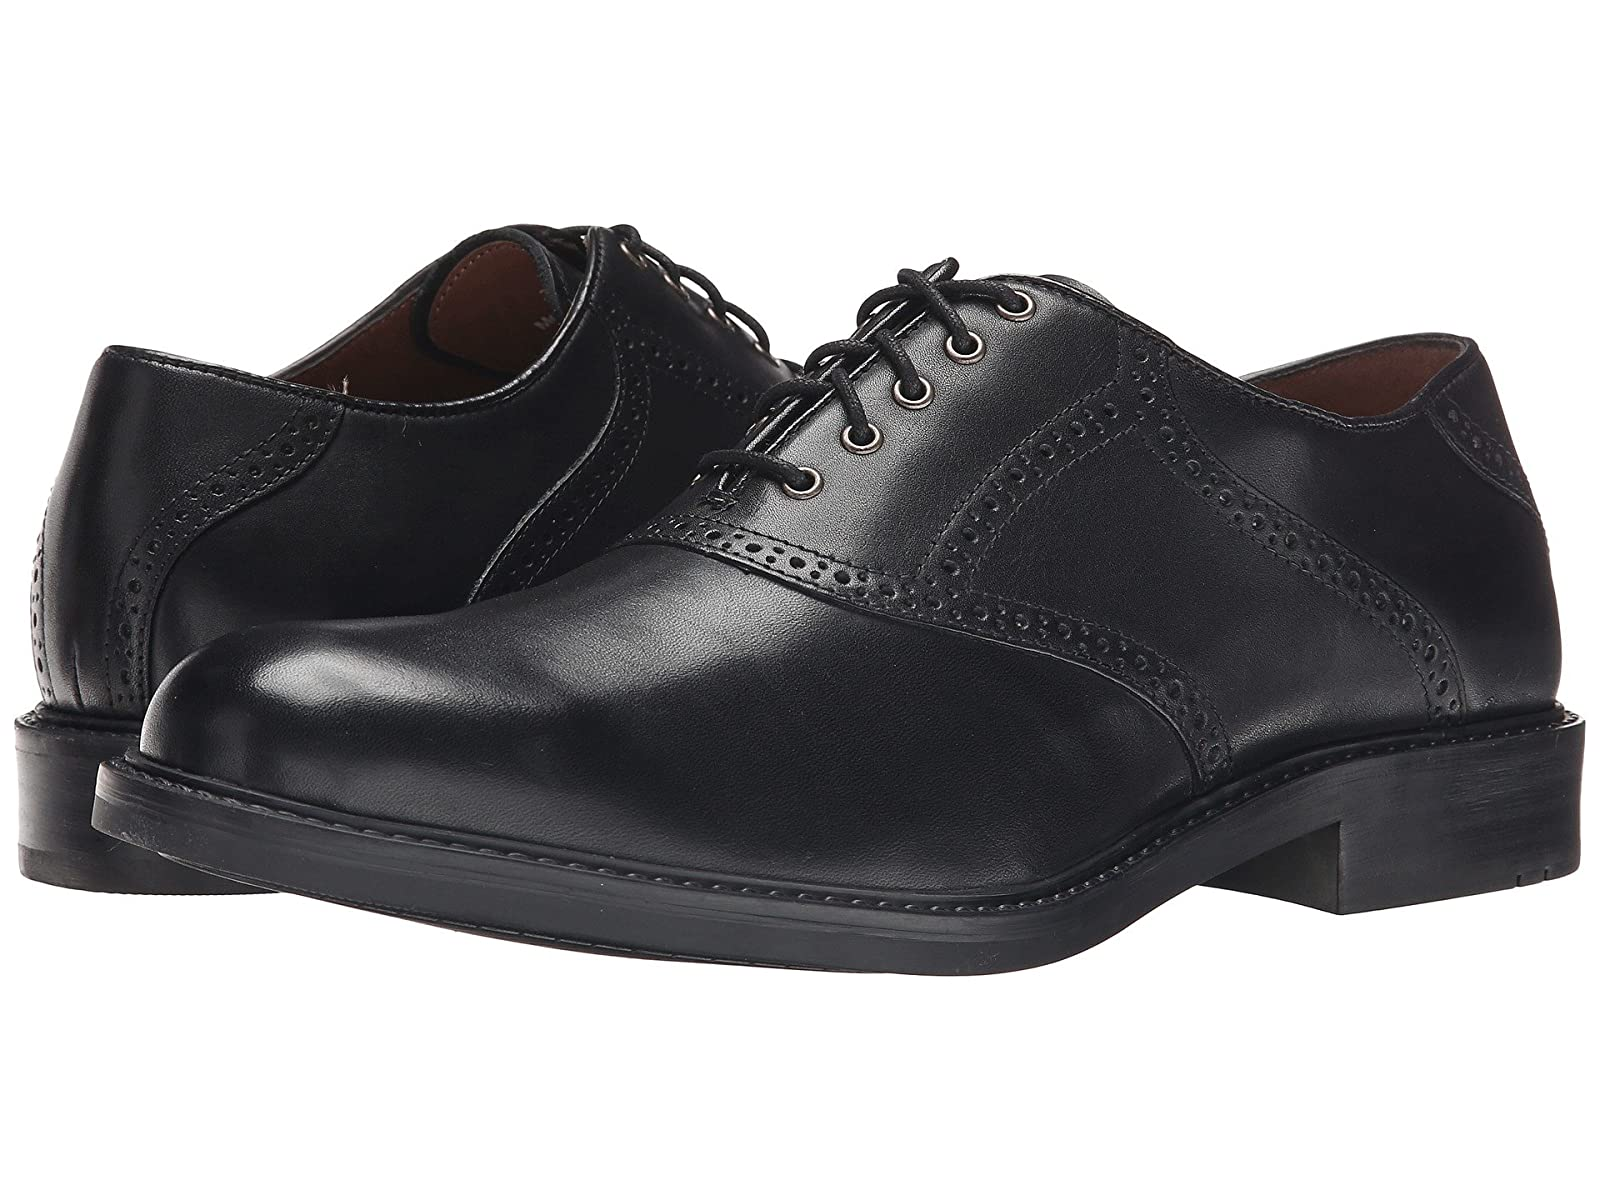 Johnston & Murphy Tabor Saddle Dress OxfordAtmospheric grades have affordable shoes